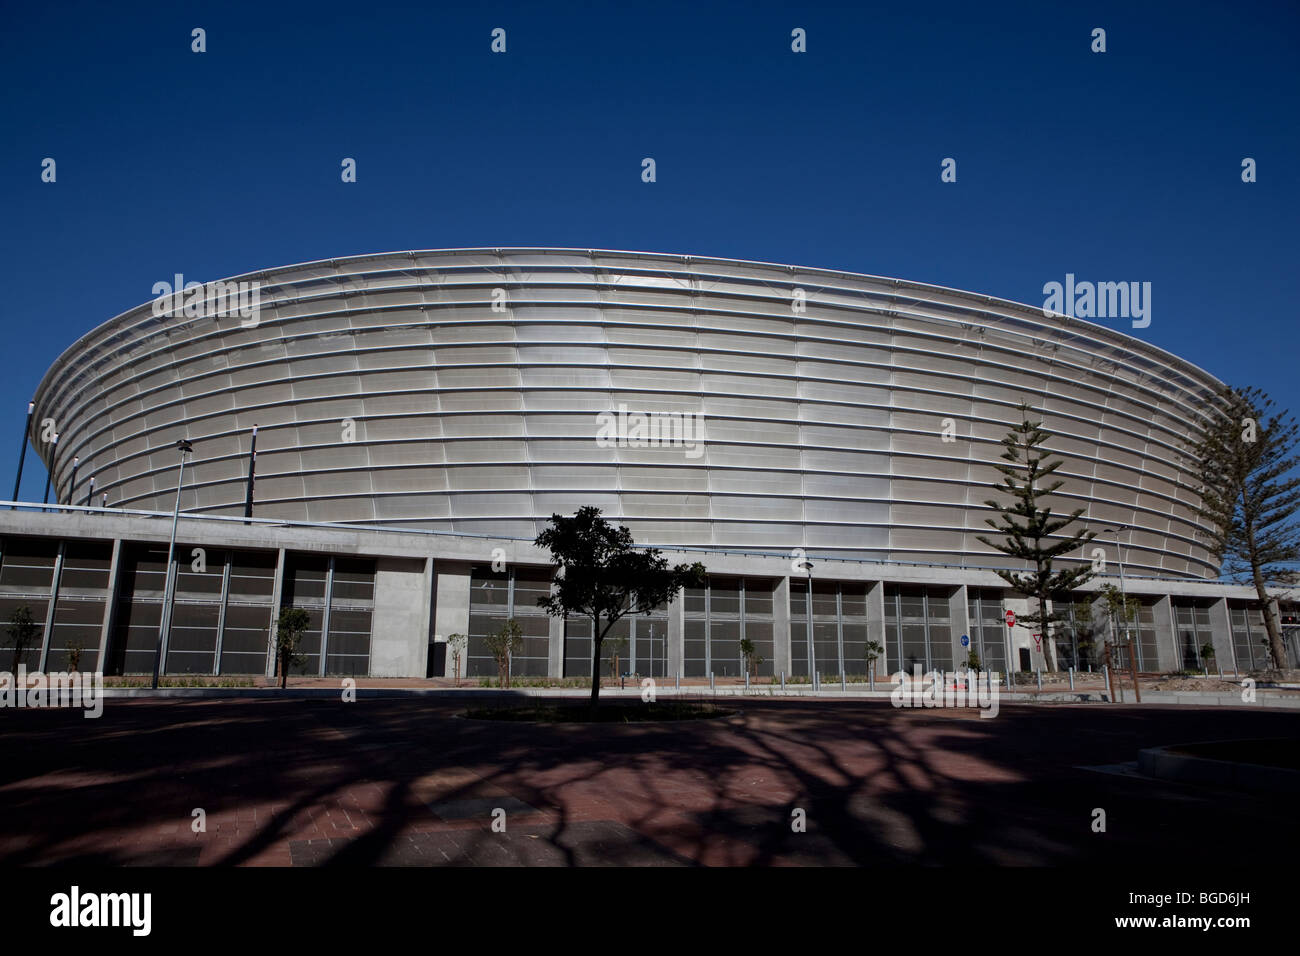 Greenpoint Soccer Stadium, Cape Town, South Africa - Stock Image